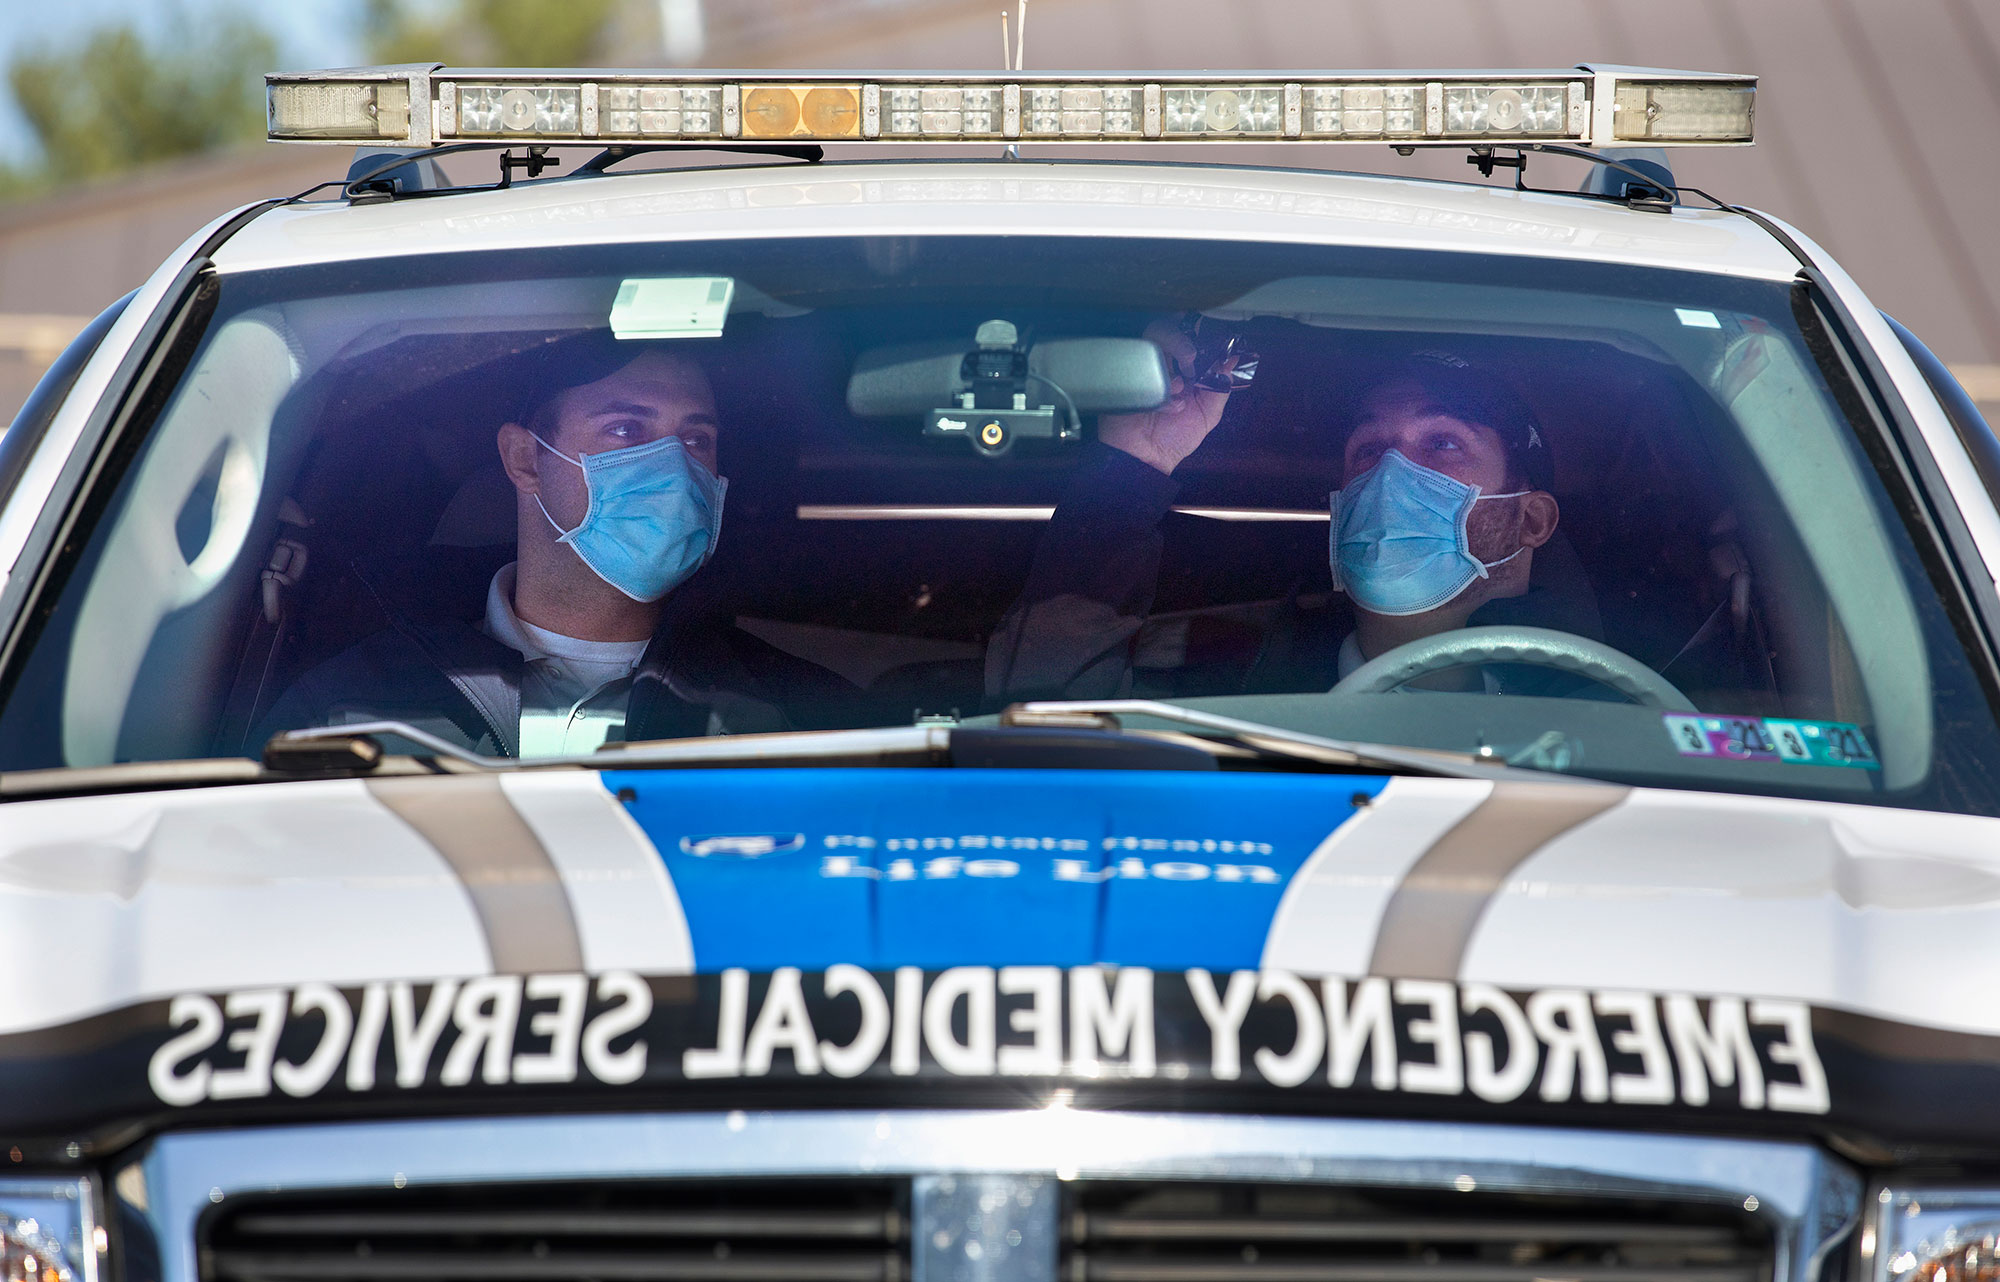 Penn State College of Medicine EMS Fellowship trainees, both wearing masks, are seen in the front seat of an EMS vehicle.